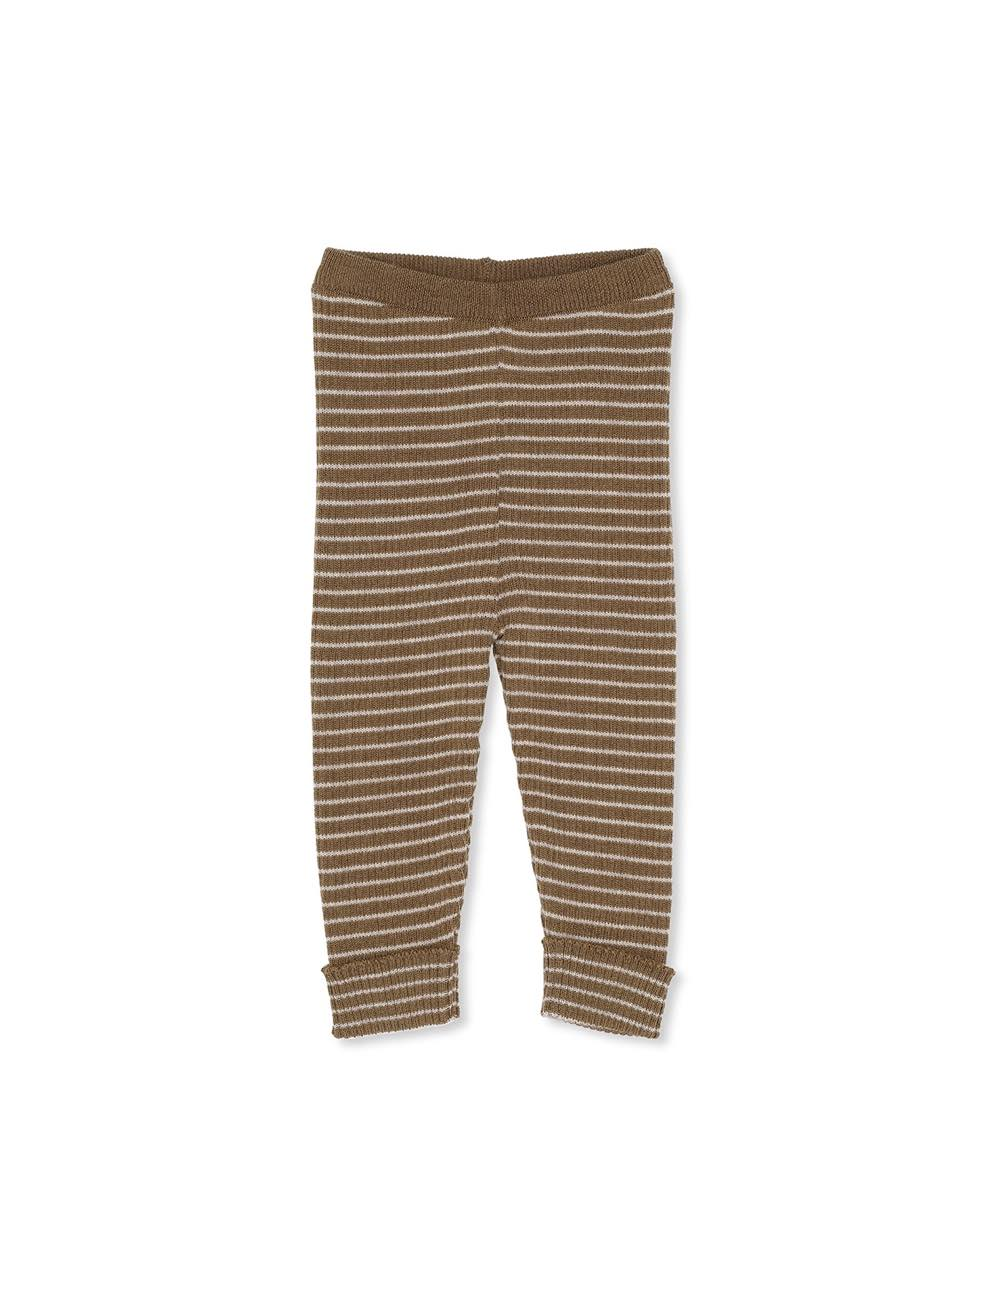 Meo Knit Pants Olive/Beige